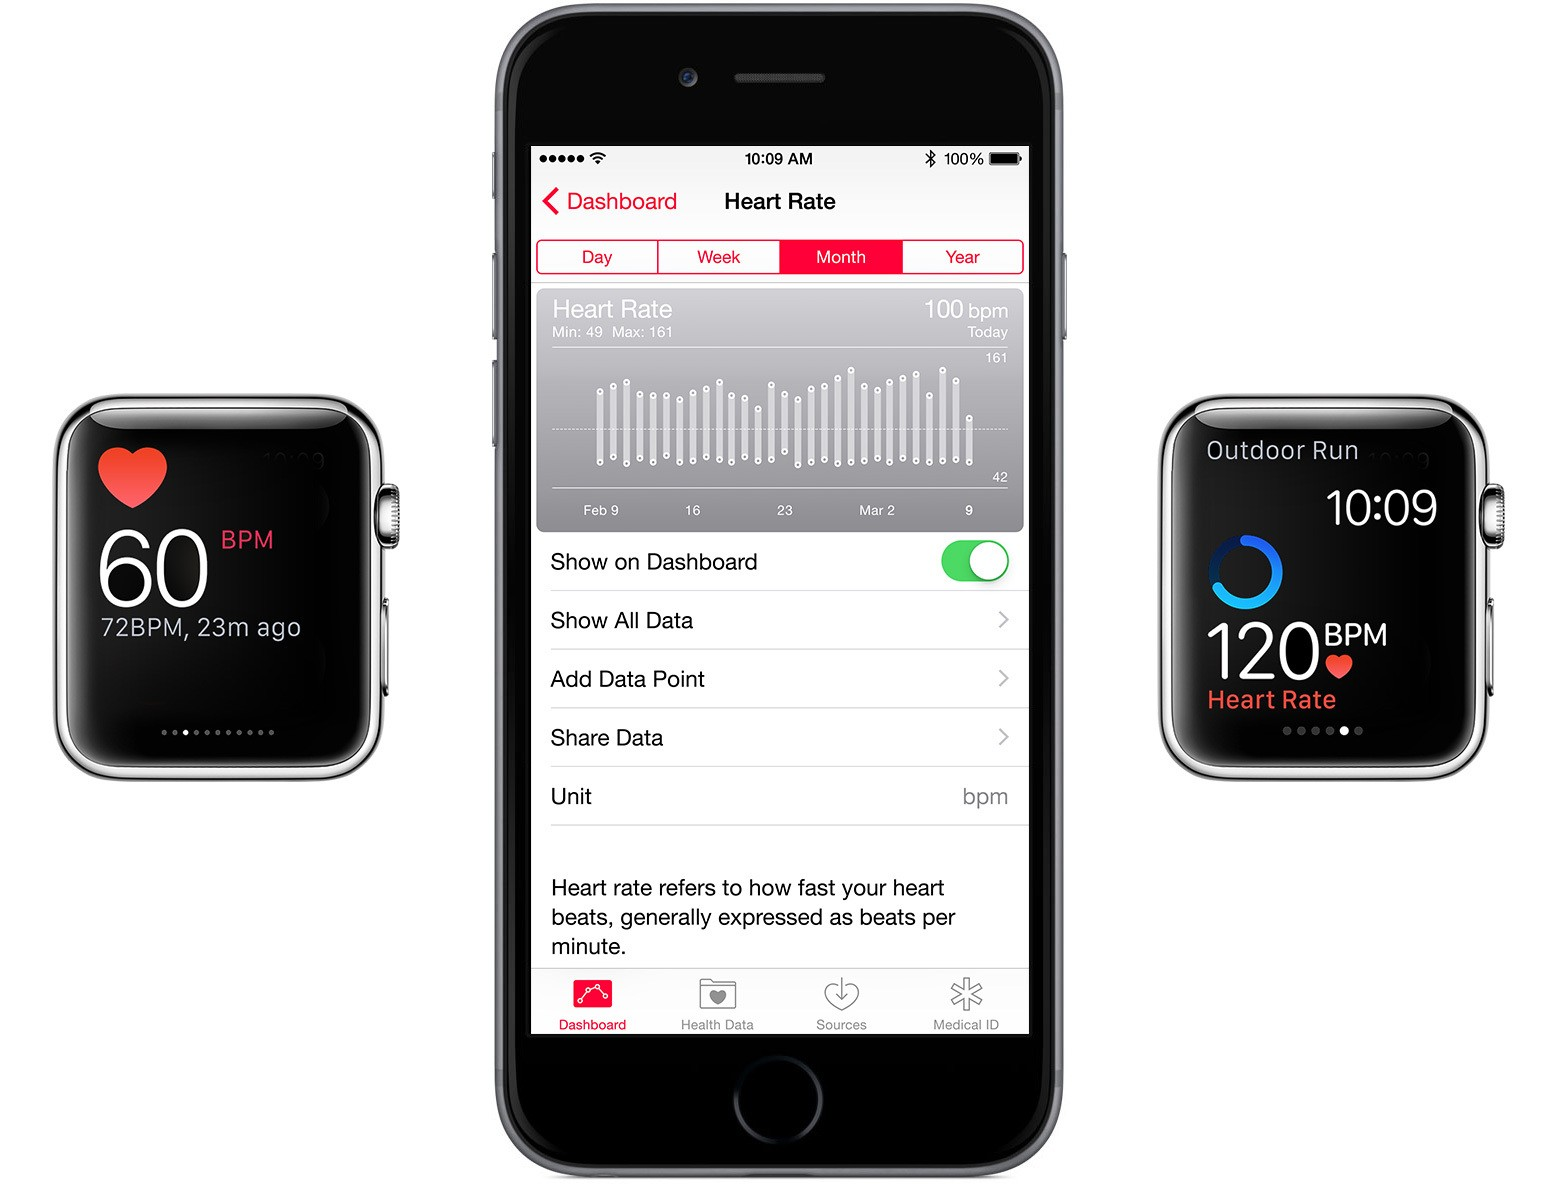 Apple details the technology and functionality behind Apple Watch's heart rate monitor